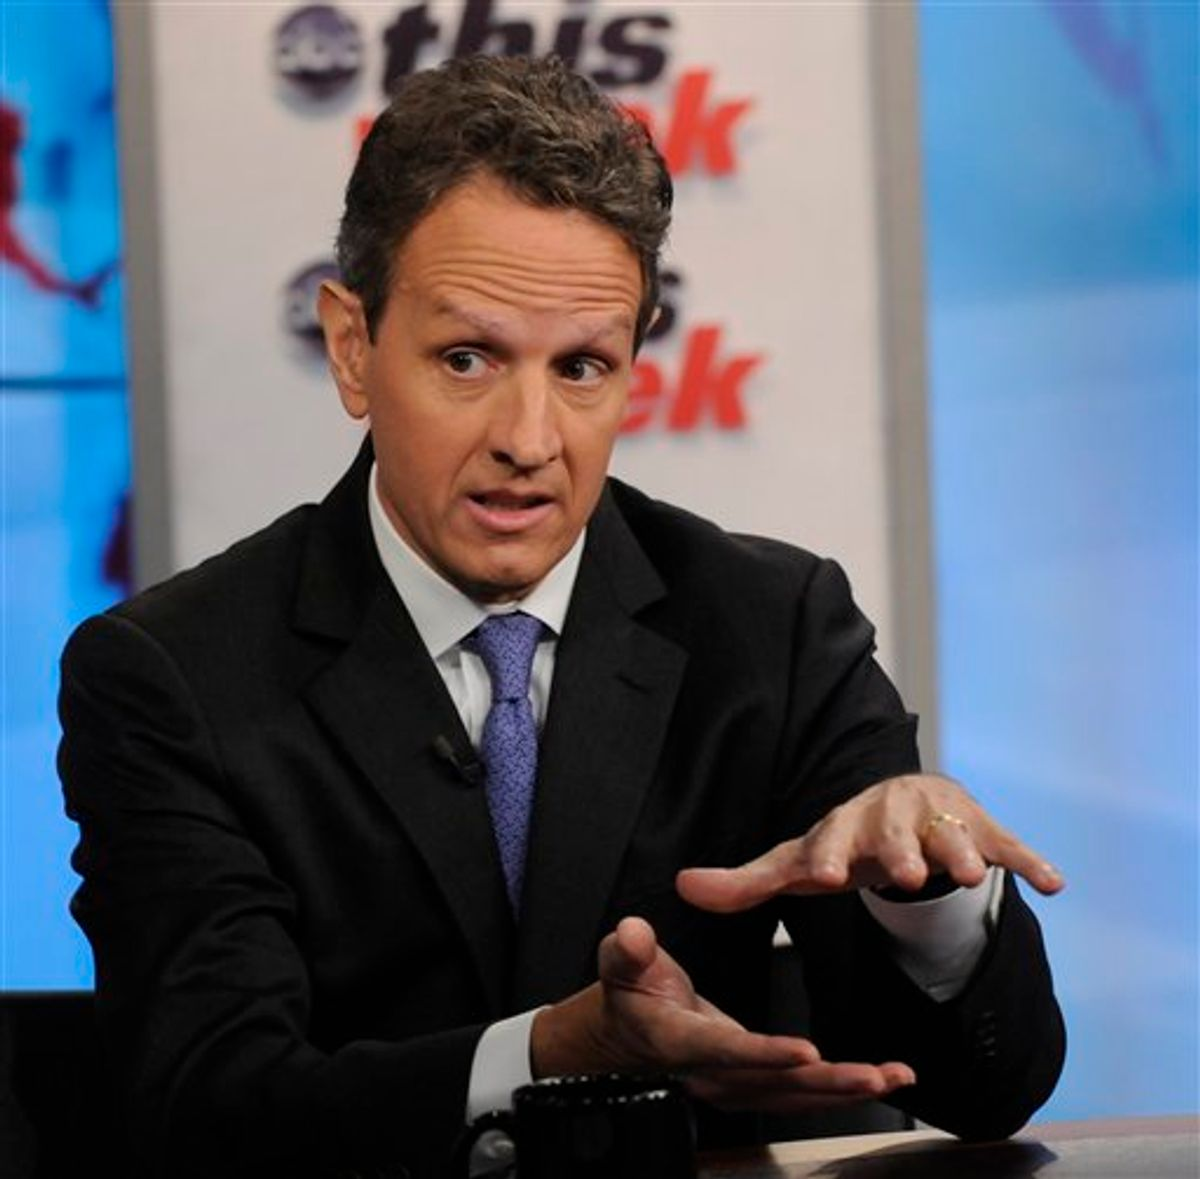 """In this photo provided by ABC News U.S. Treasury Secretary Timothy Geithner talks about the debt-ceiling on ABC's """"This Week"""" Sunday, July 24, 2011, in Washington. Congressional leaders in Washington planned to work on a fiercely hot Sunday to try to reach a bipartisan accord to avert a debt-ceiling crisis on Aug. 2. (AP Photo/ABC, Fred Watkins) (AP)"""